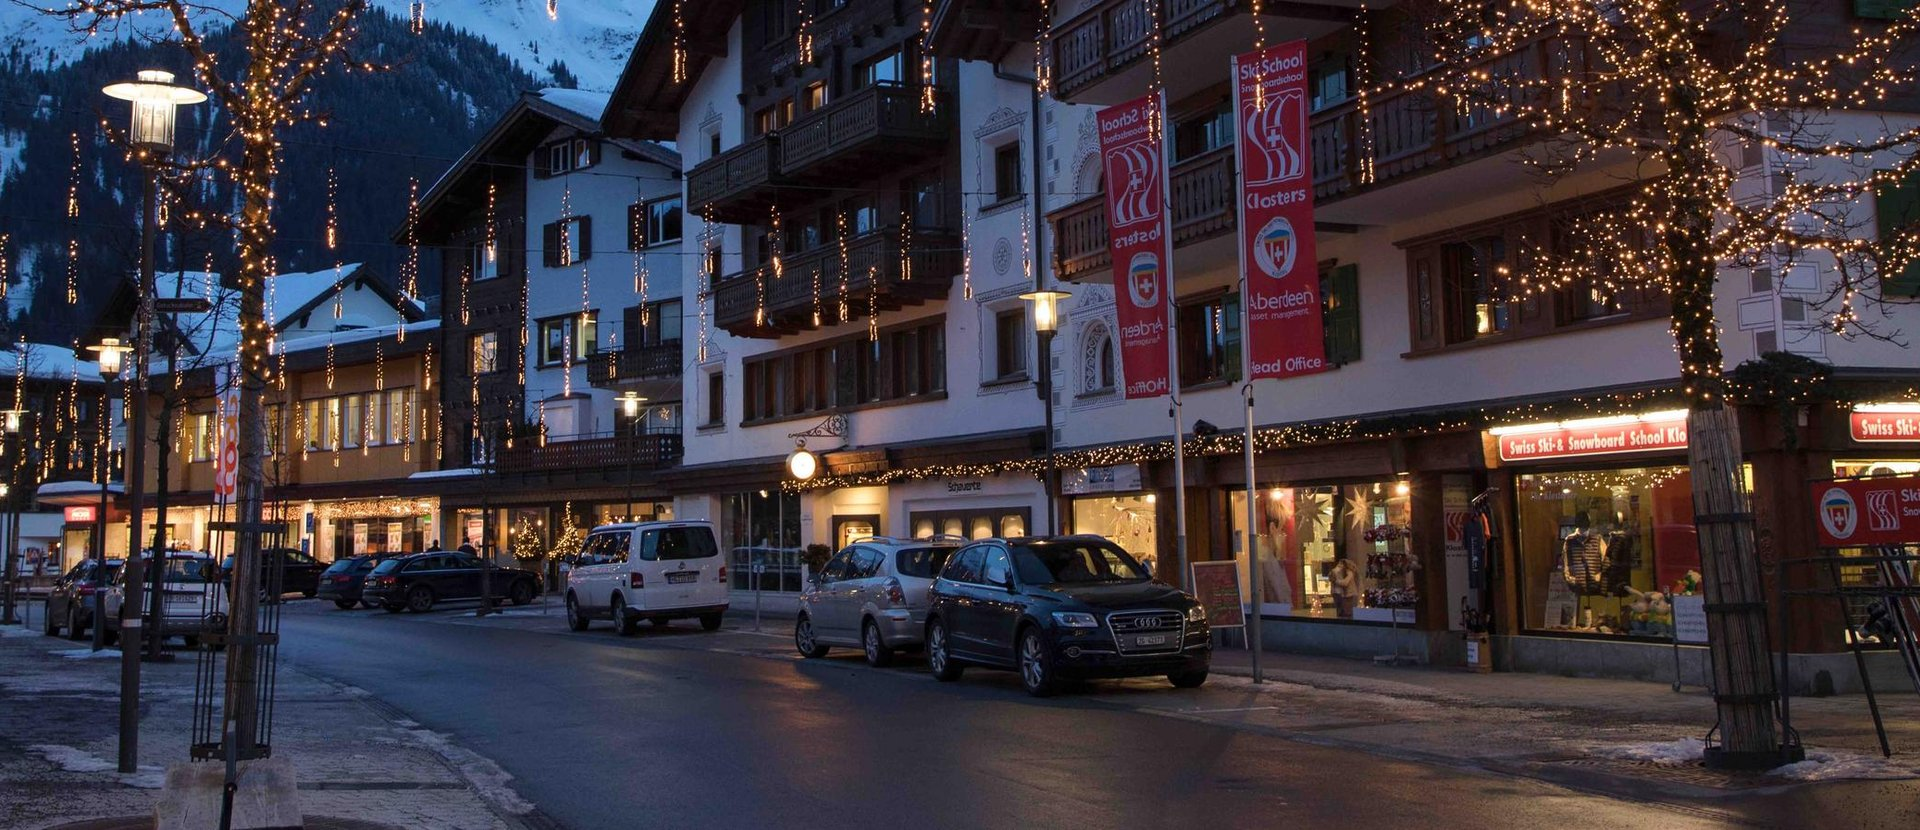 Shops in Davos Klosters